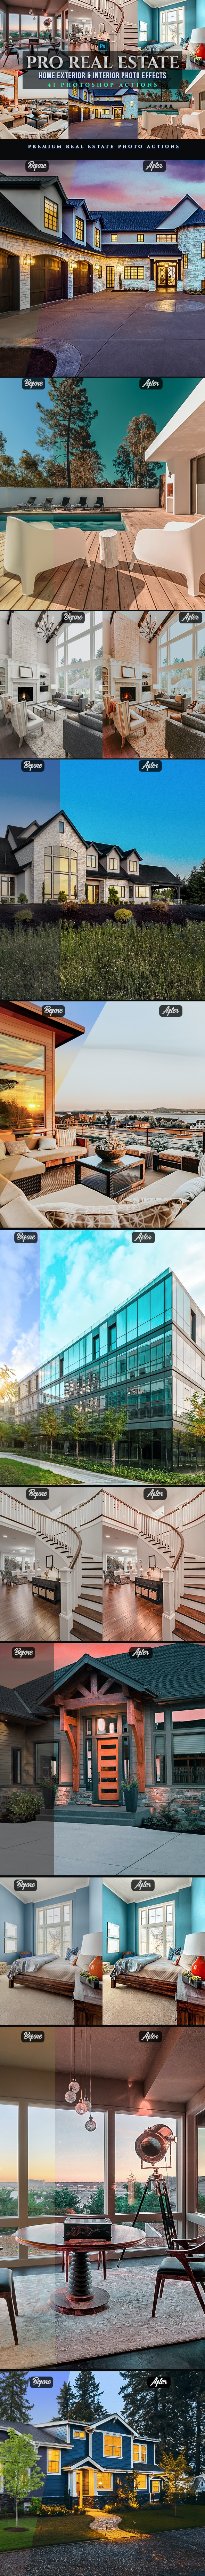 42 PRO Real Estate Photoshop Actions - Photo Effects Actions